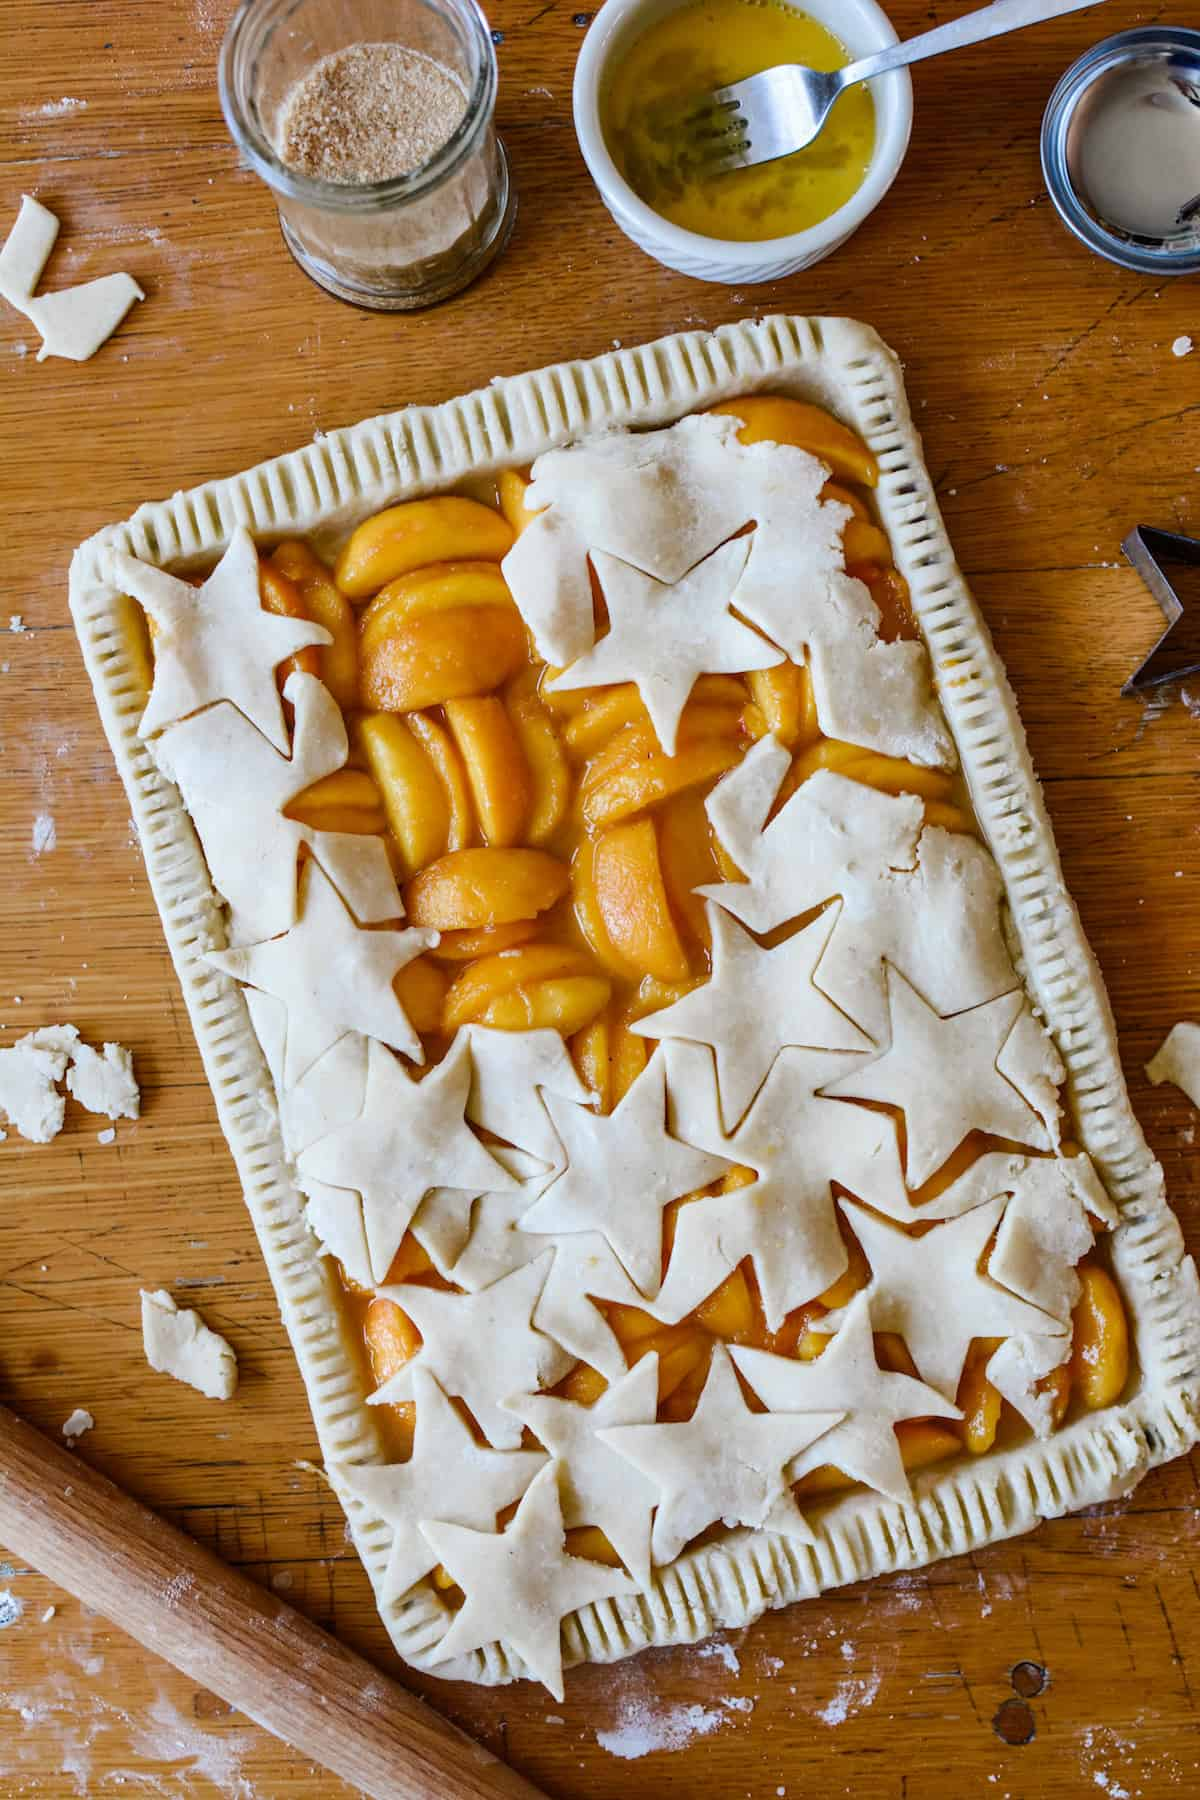 A peach slab pie sitting on a wooden table with a rolling pin and scraps of dough.